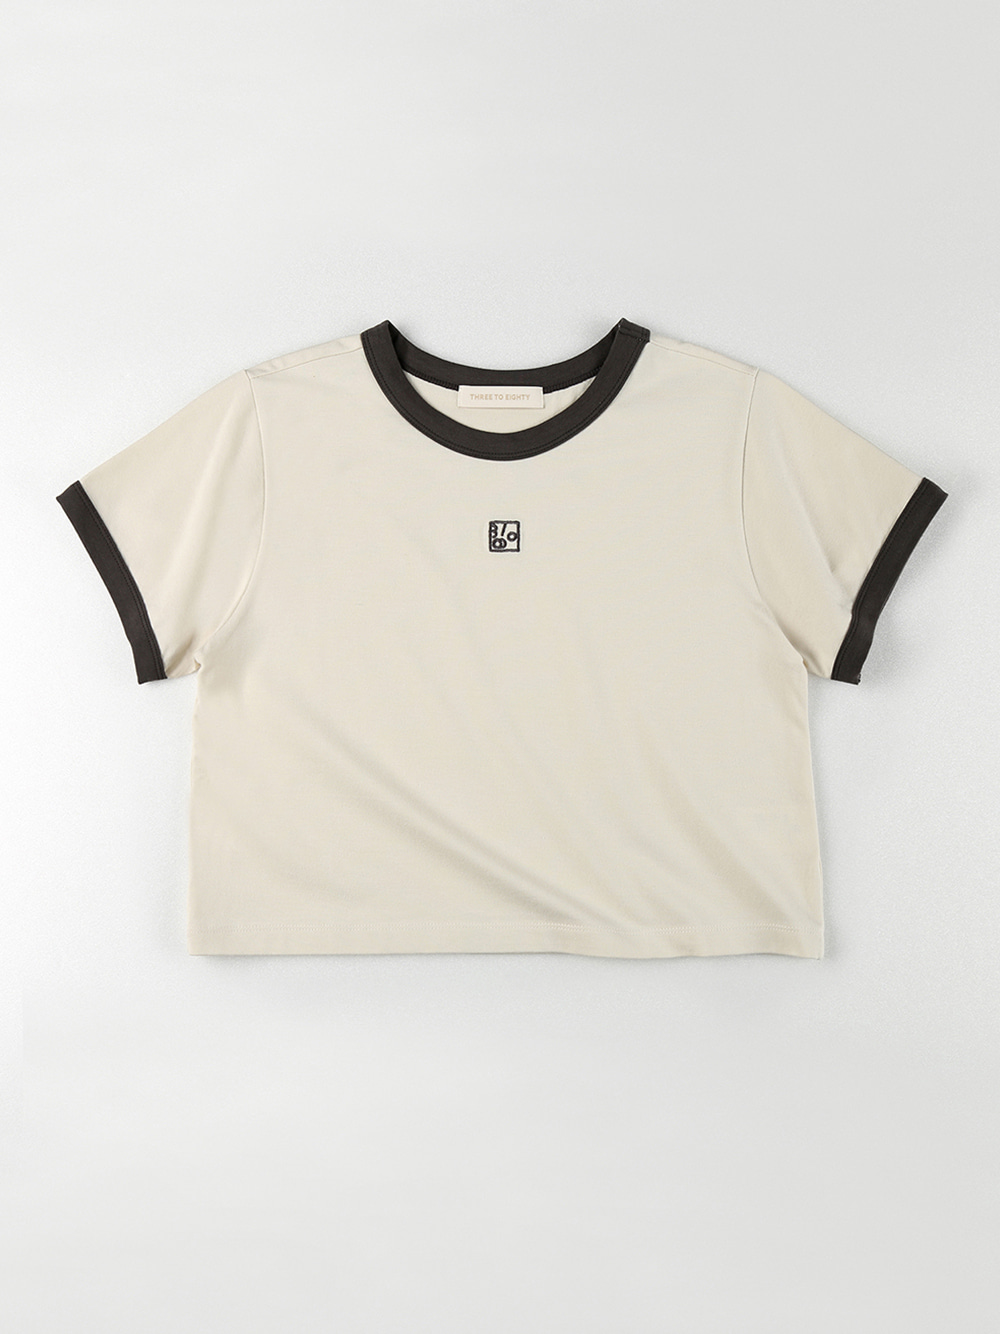 Ringer Crop T-shirt (Charcoal)